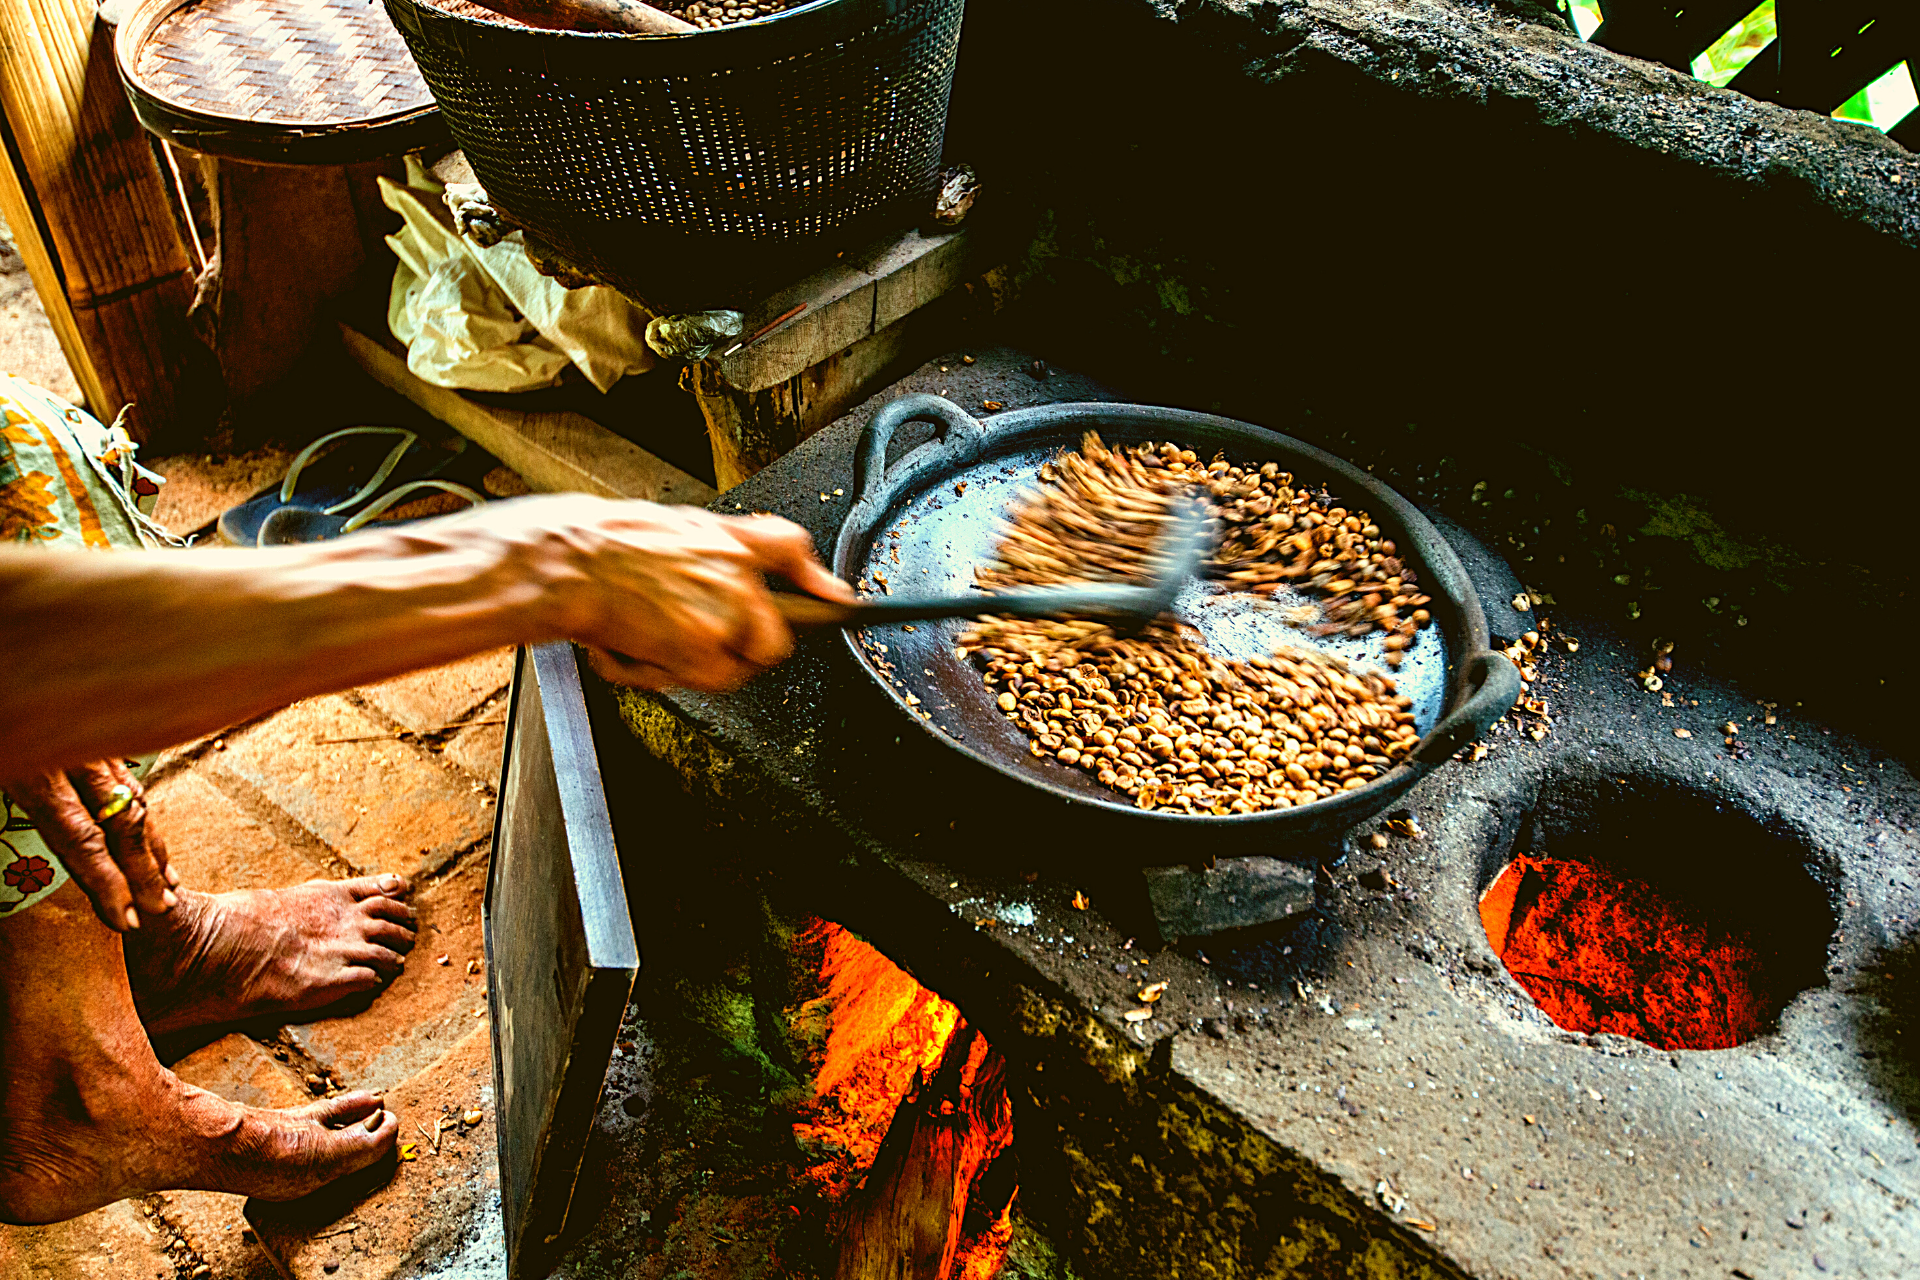 How To Roast Your Own Coffee at Home In 3 Steps